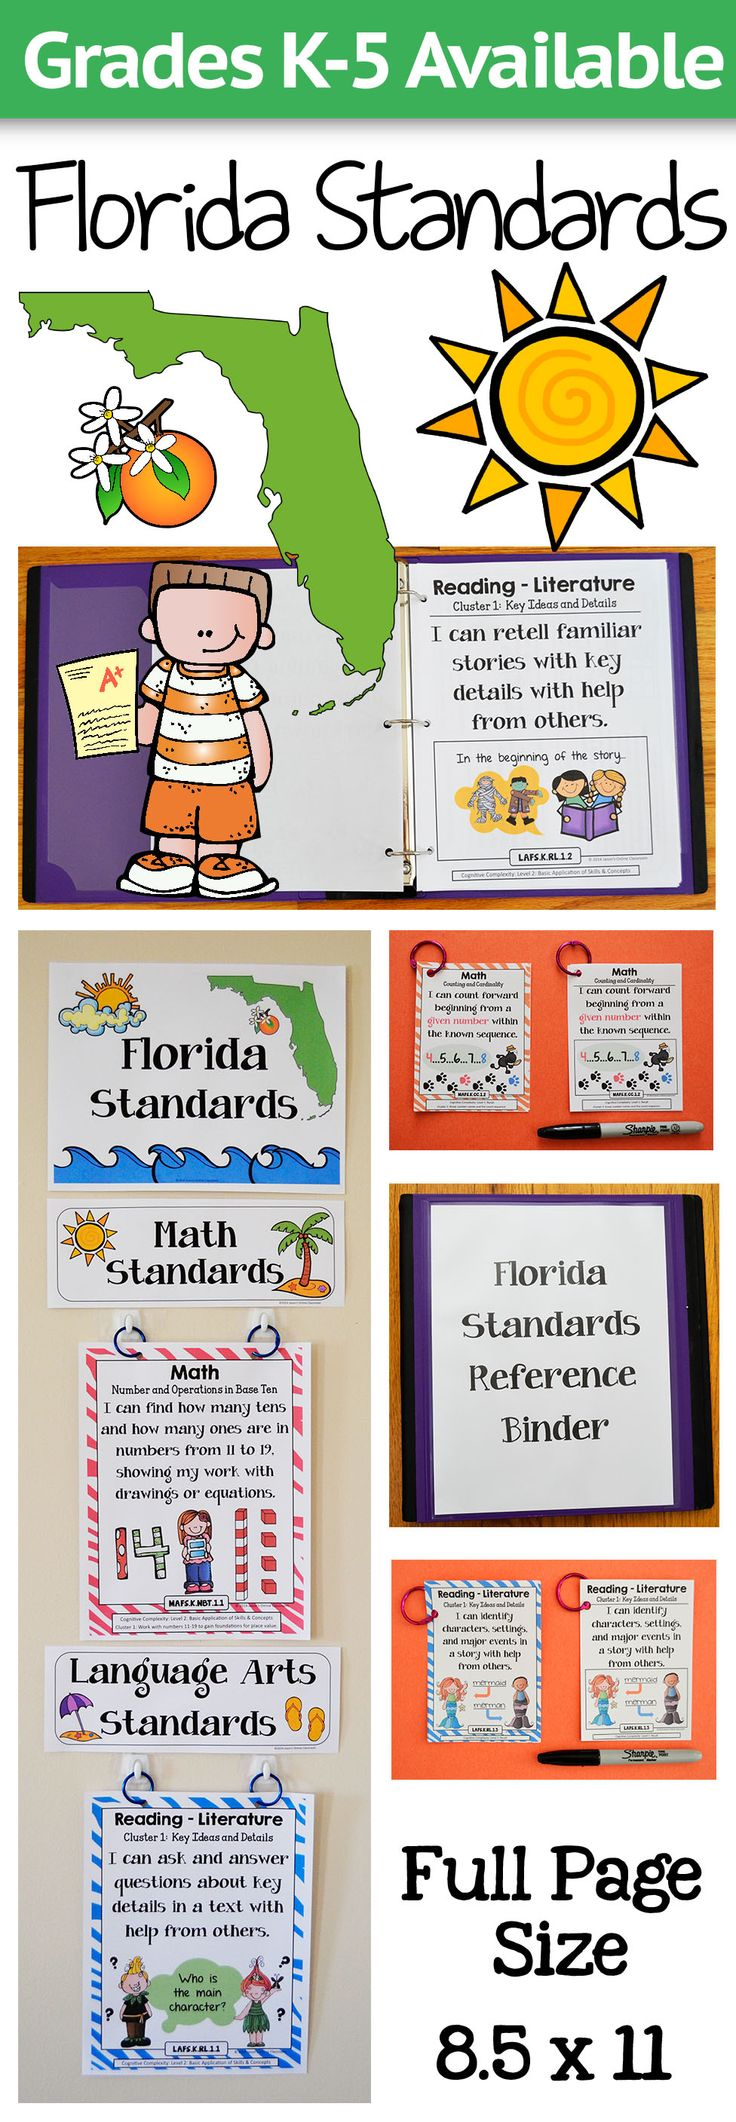 Florida Math, ELA, Science, and Social Studies Standards for Grades K-5. Create amazing classroom displays, focus walls, and reference binders! There are also miniature posters included that are the perfect size for interactive notebooks or student reward badges! Stay organized and help the students take charge of their own learning!